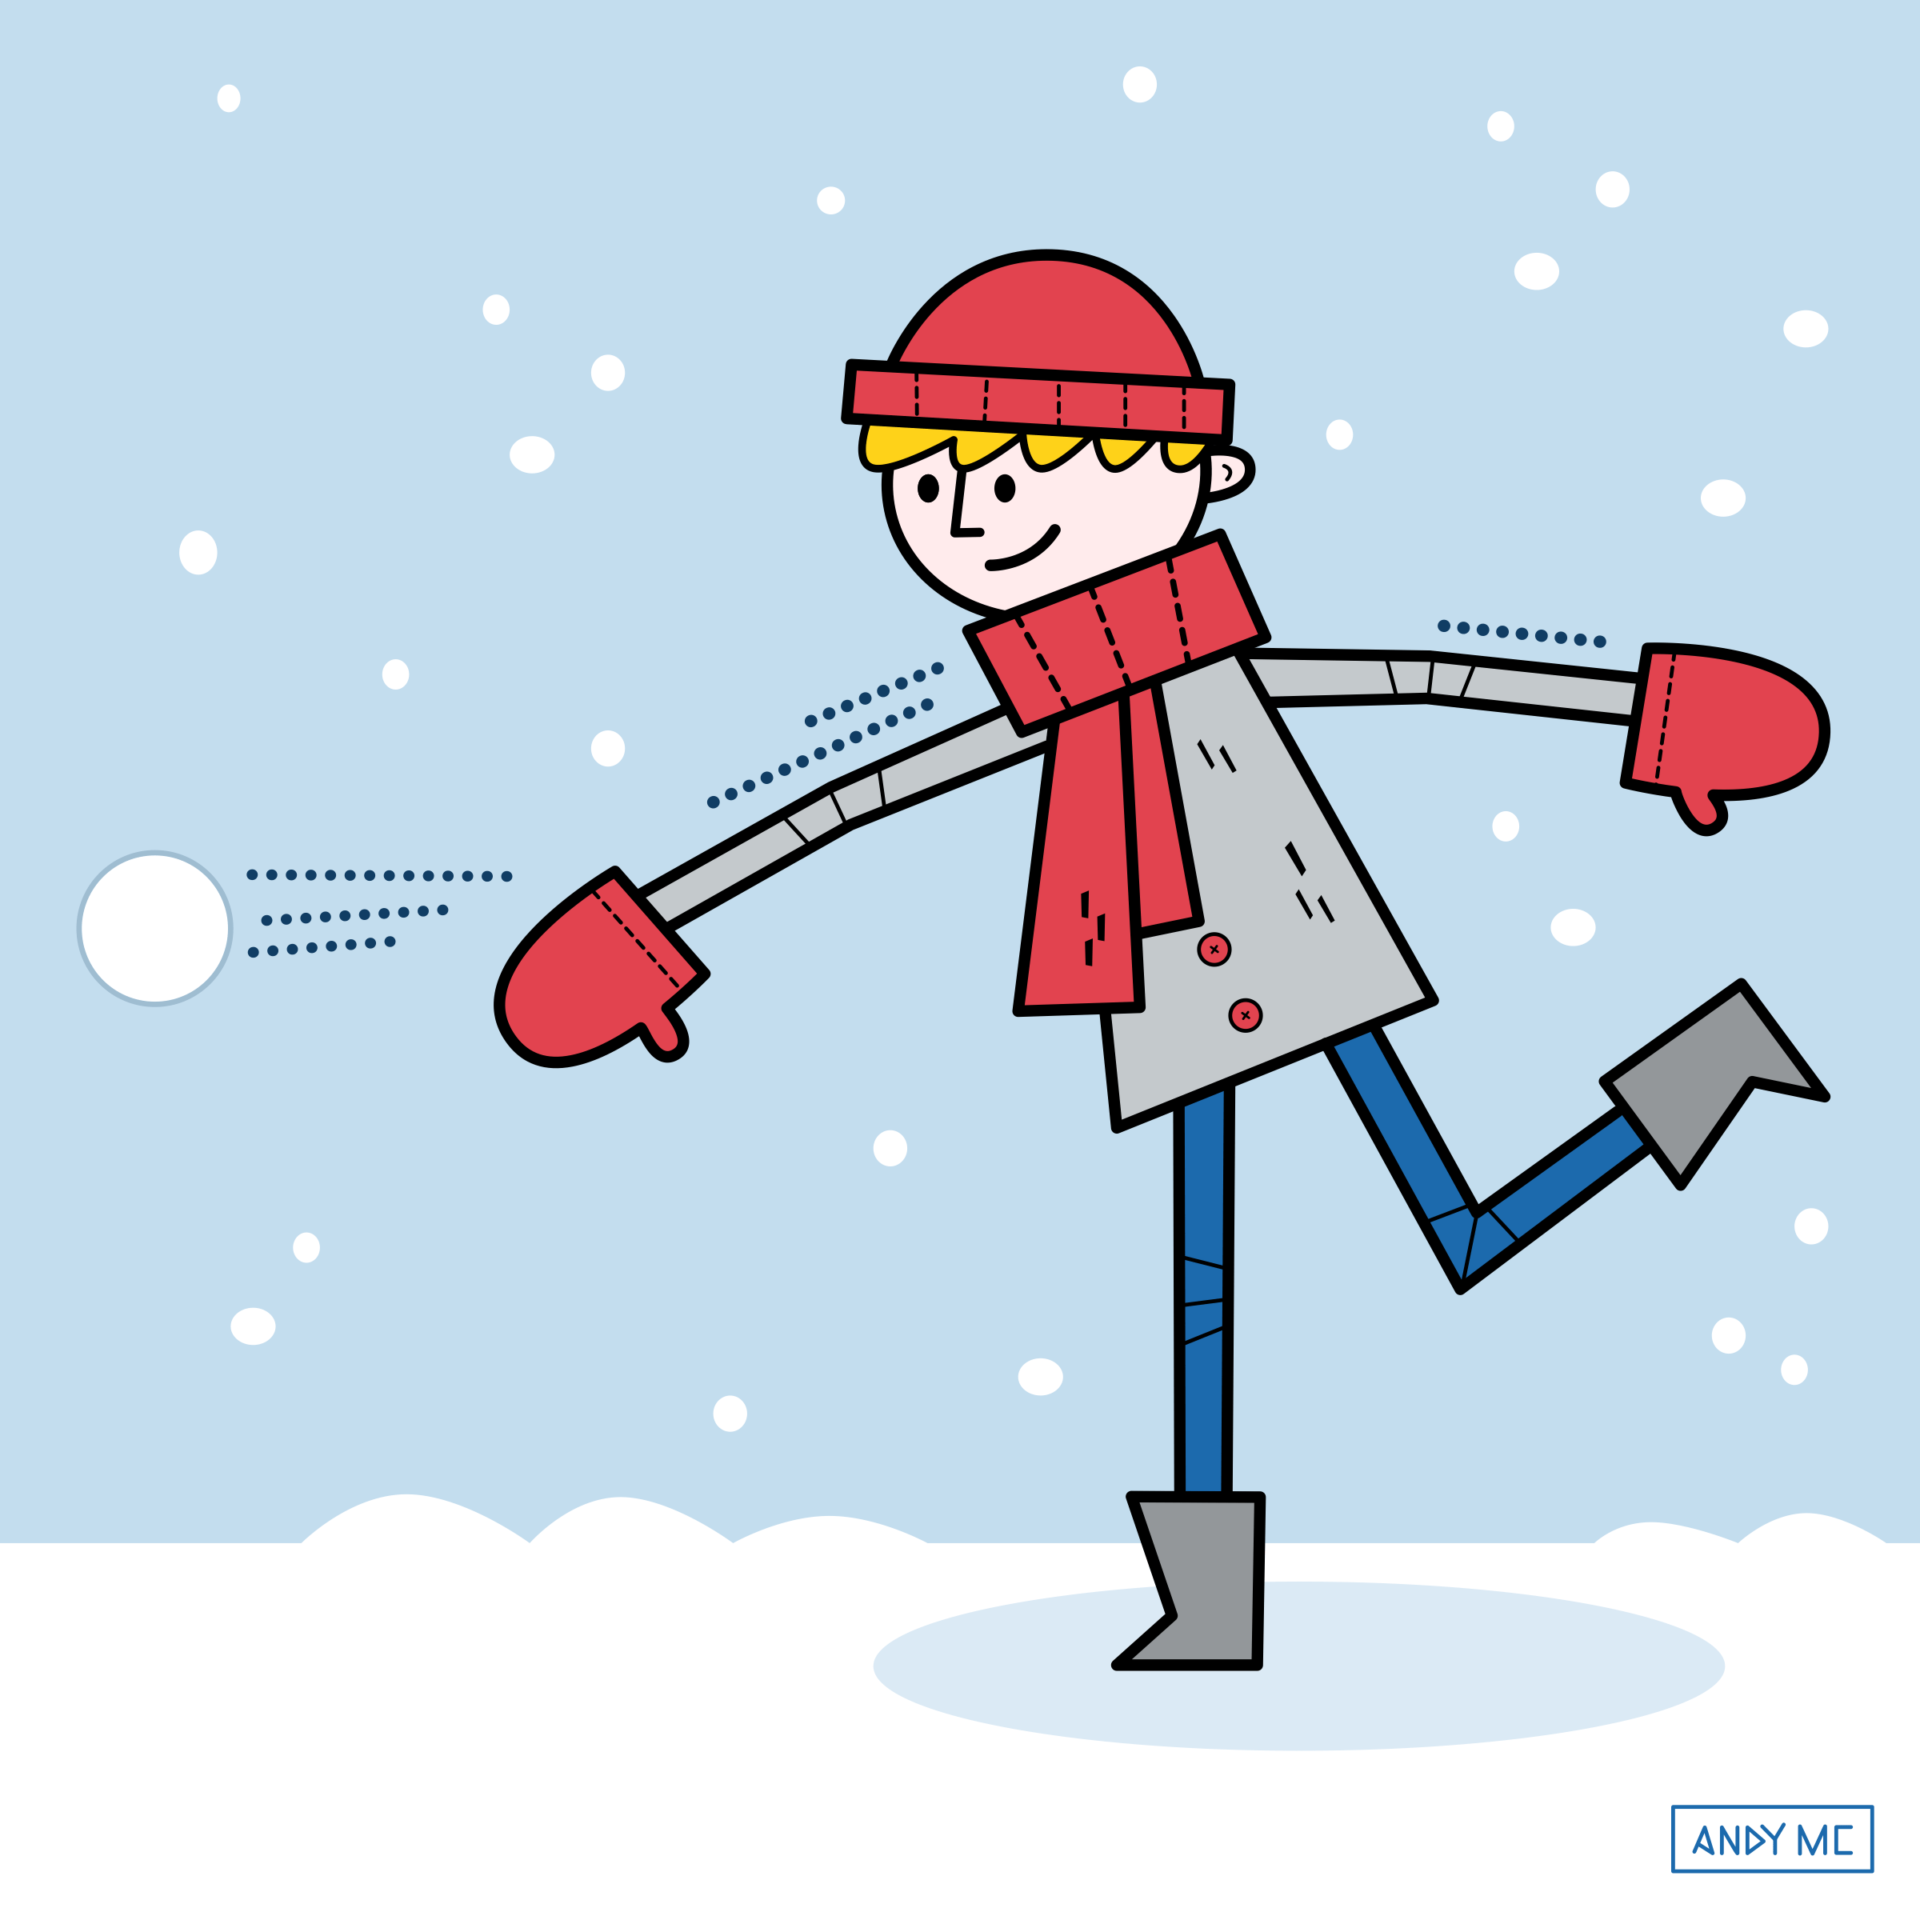 an illustration of a young man throwing a snowball